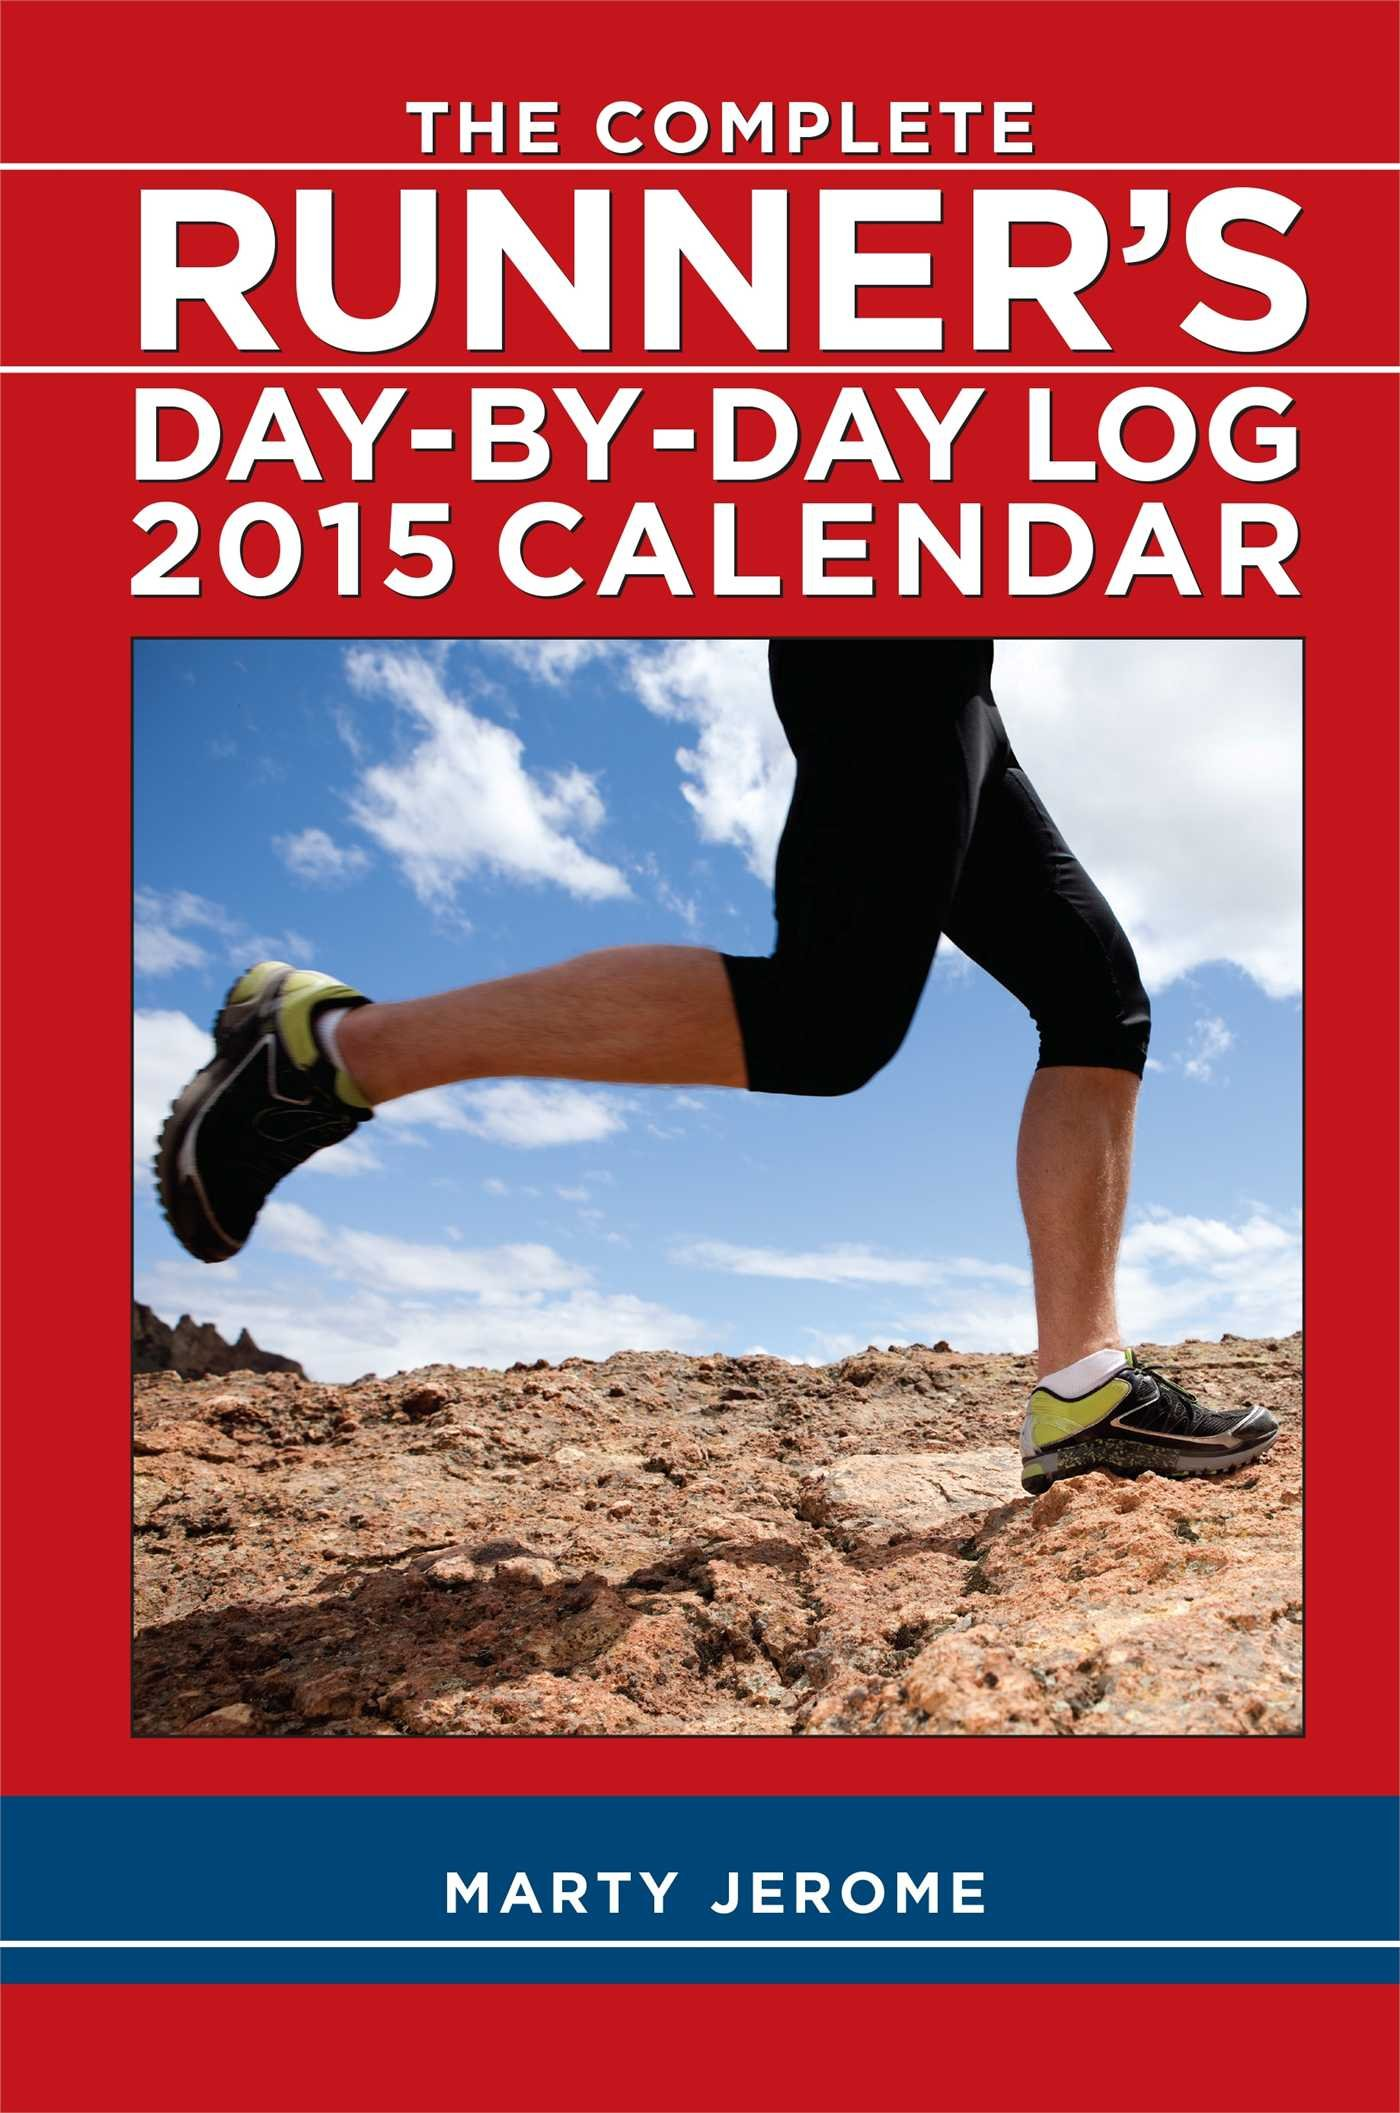 Download The Complete Runner's Day-by-Day Log 2015 Calendar PDF